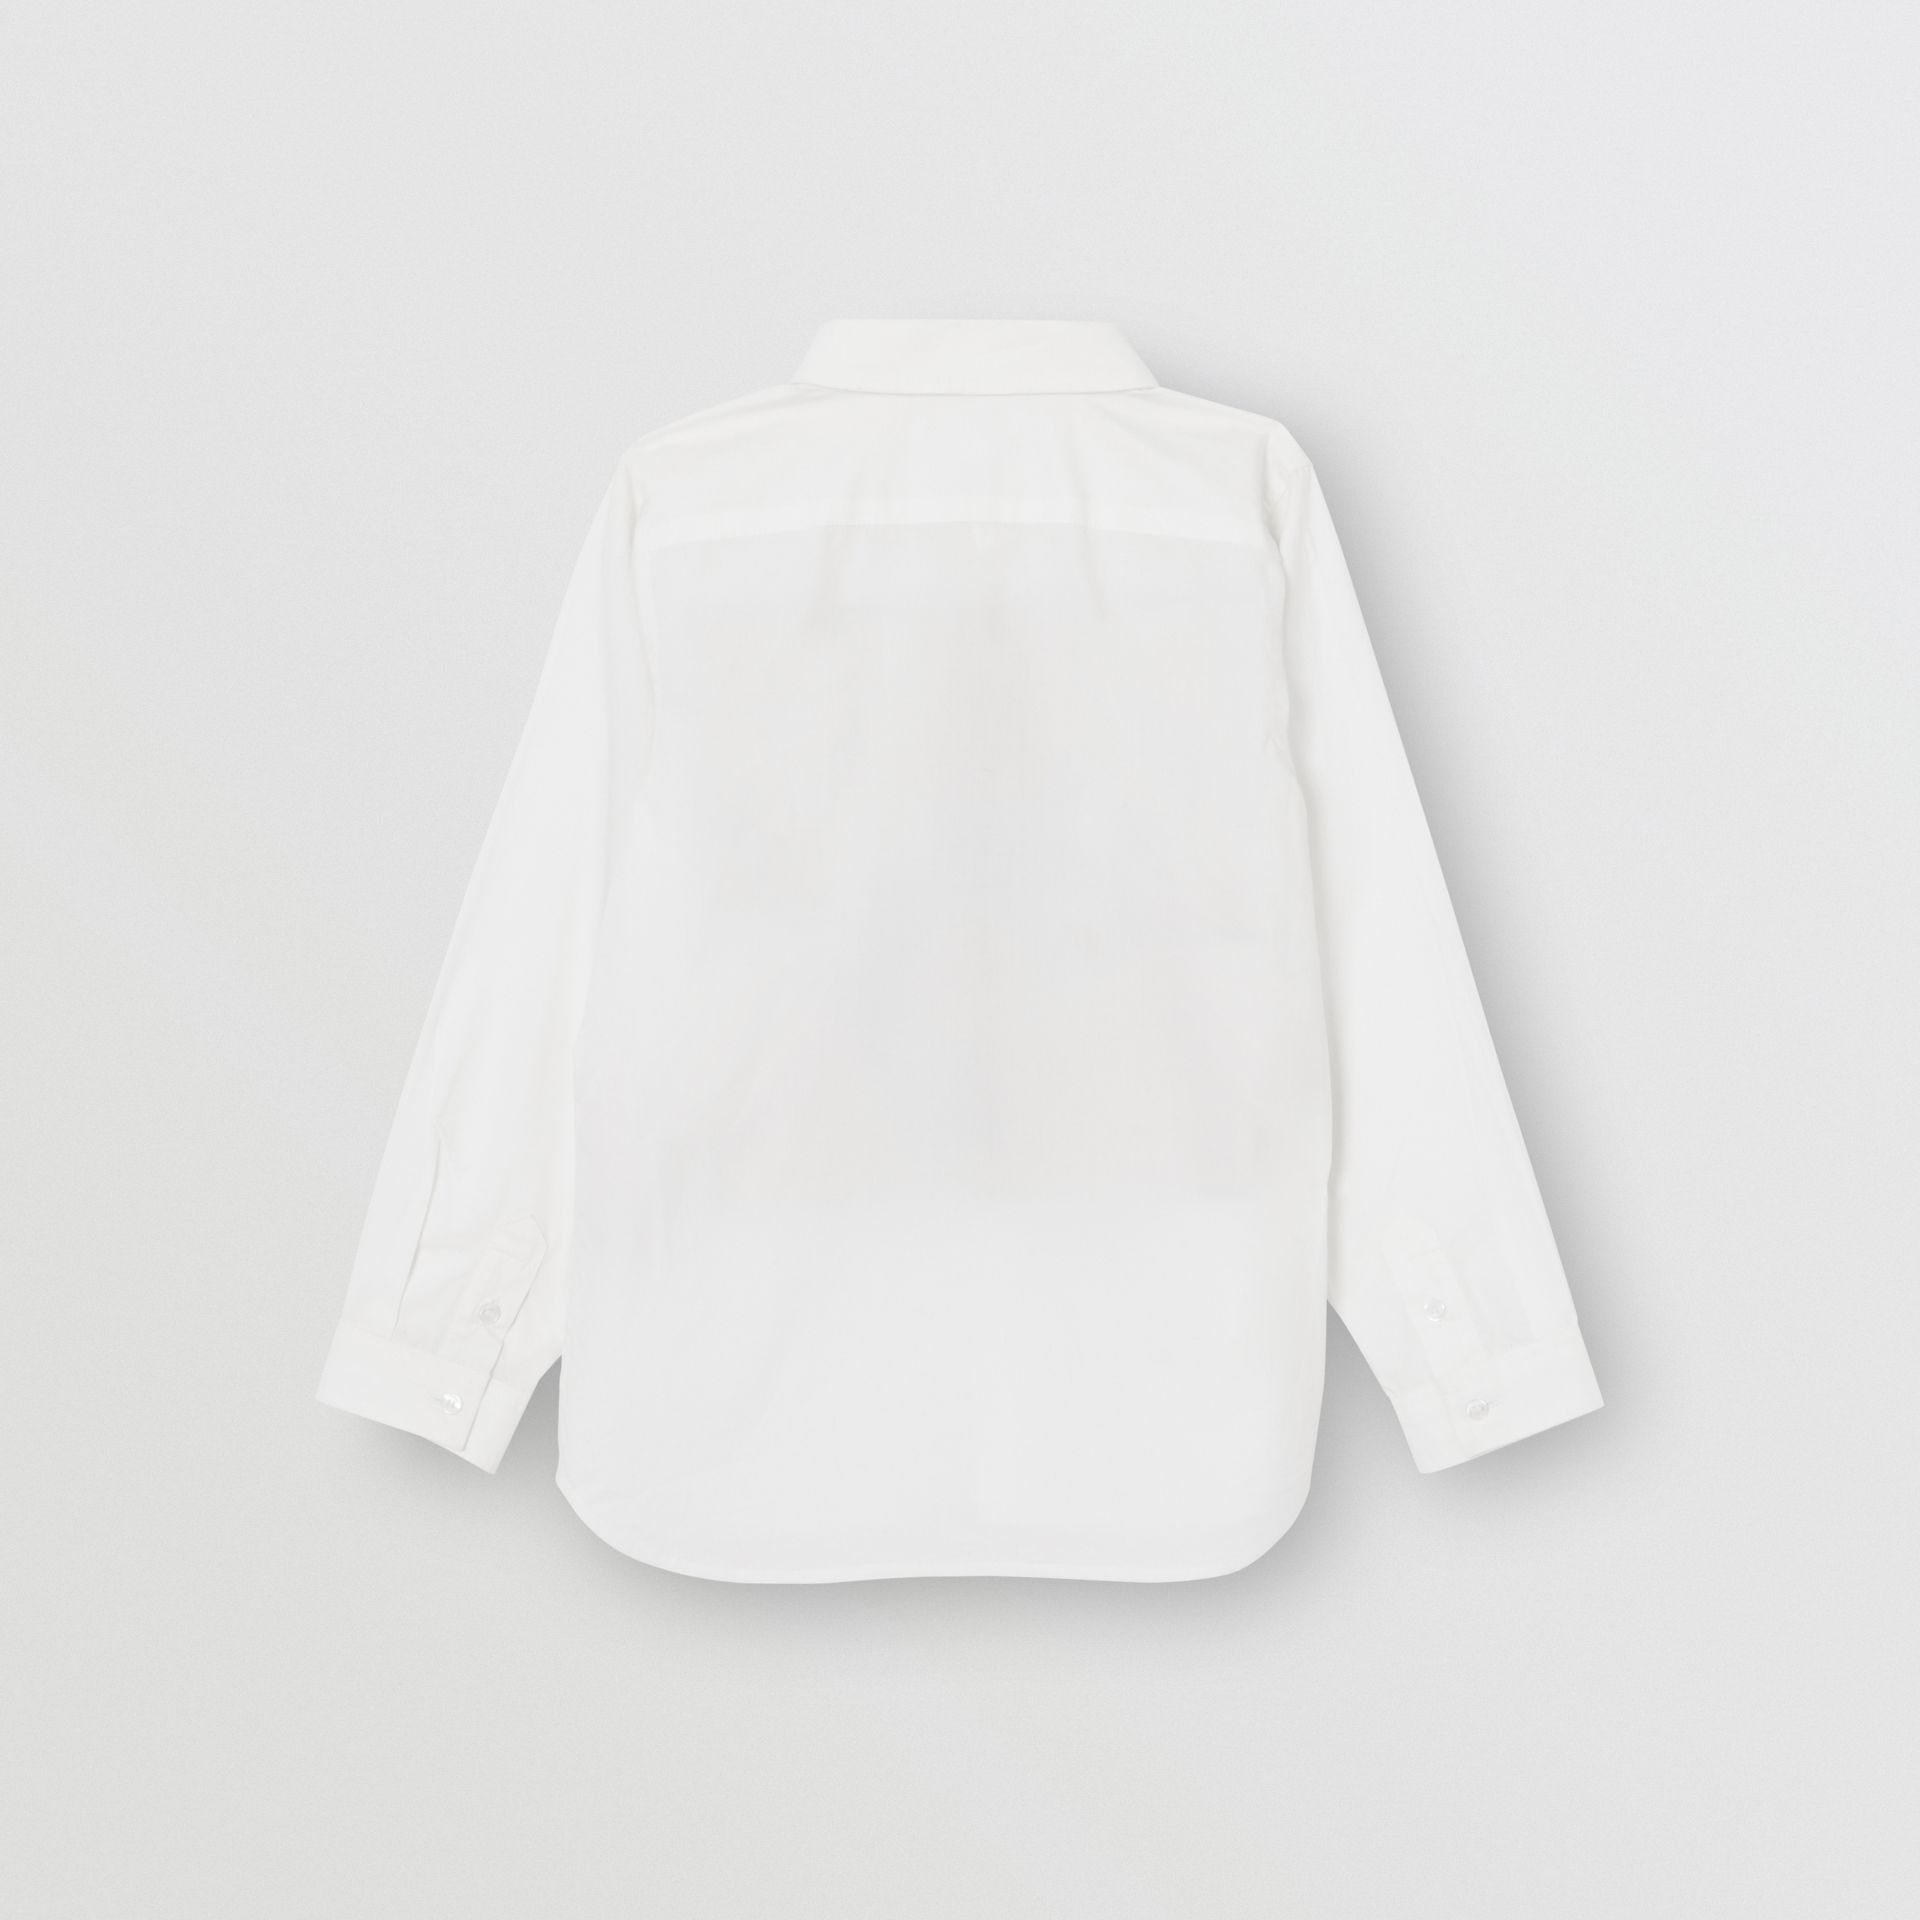 Logo and Archive Scarf Print Stretch Cotton Shirt in White | Burberry - gallery image 3